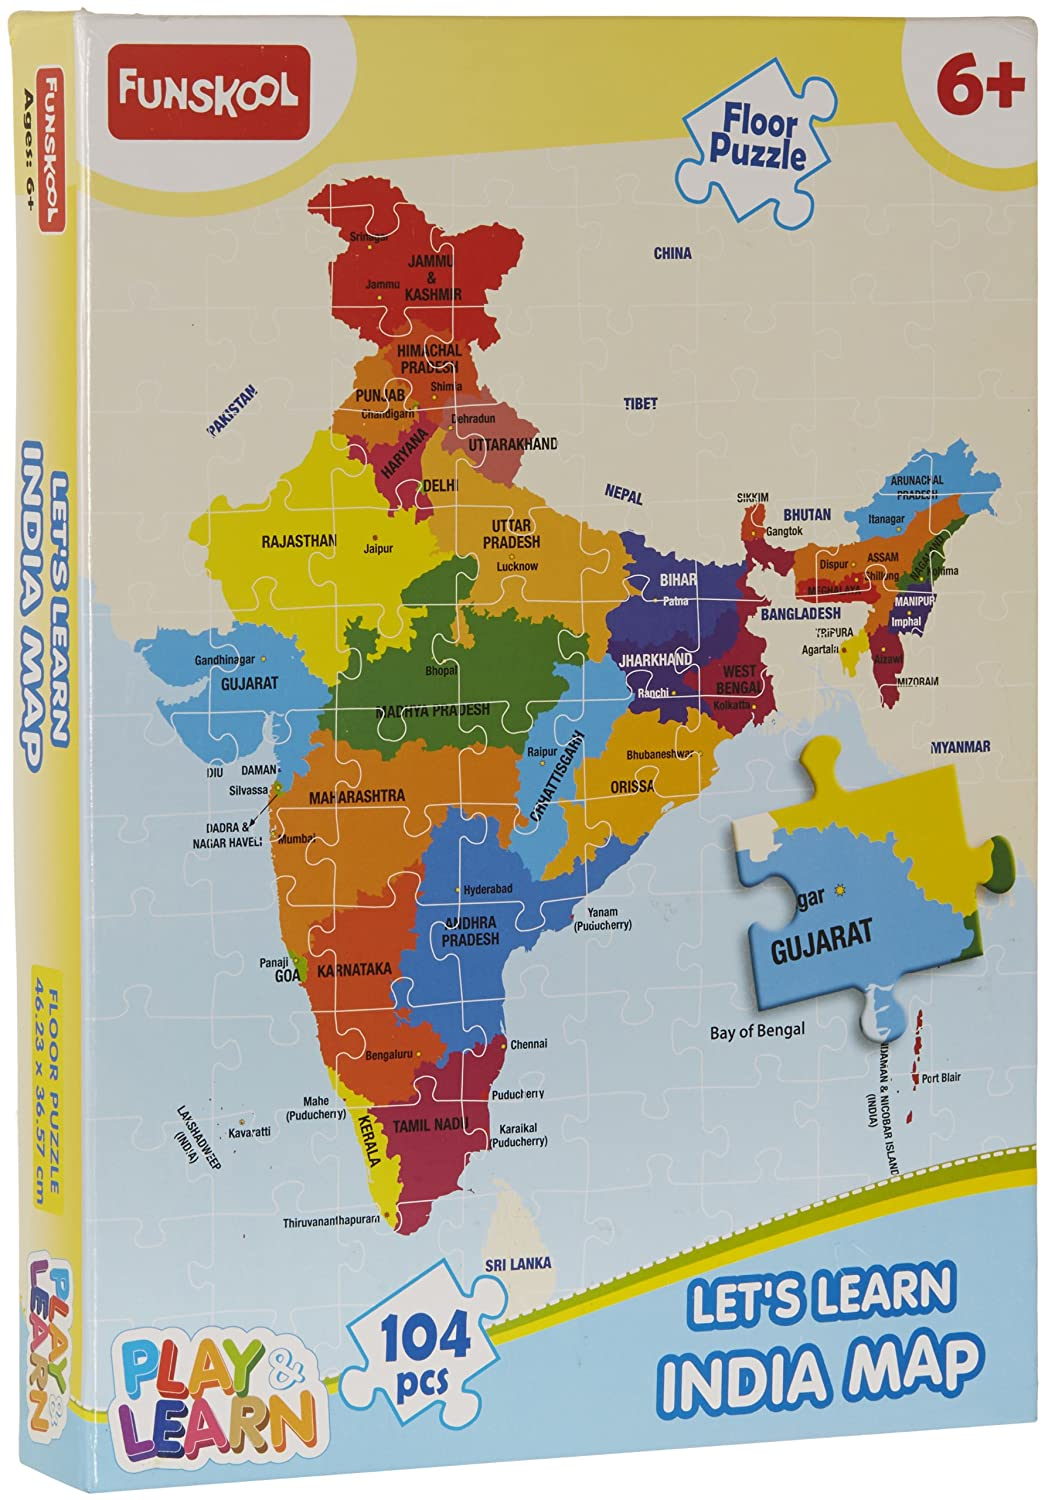 Buy funskool india map puzzles online at low prices in india buy funskool india map puzzles online at low prices in india amazon gumiabroncs Image collections